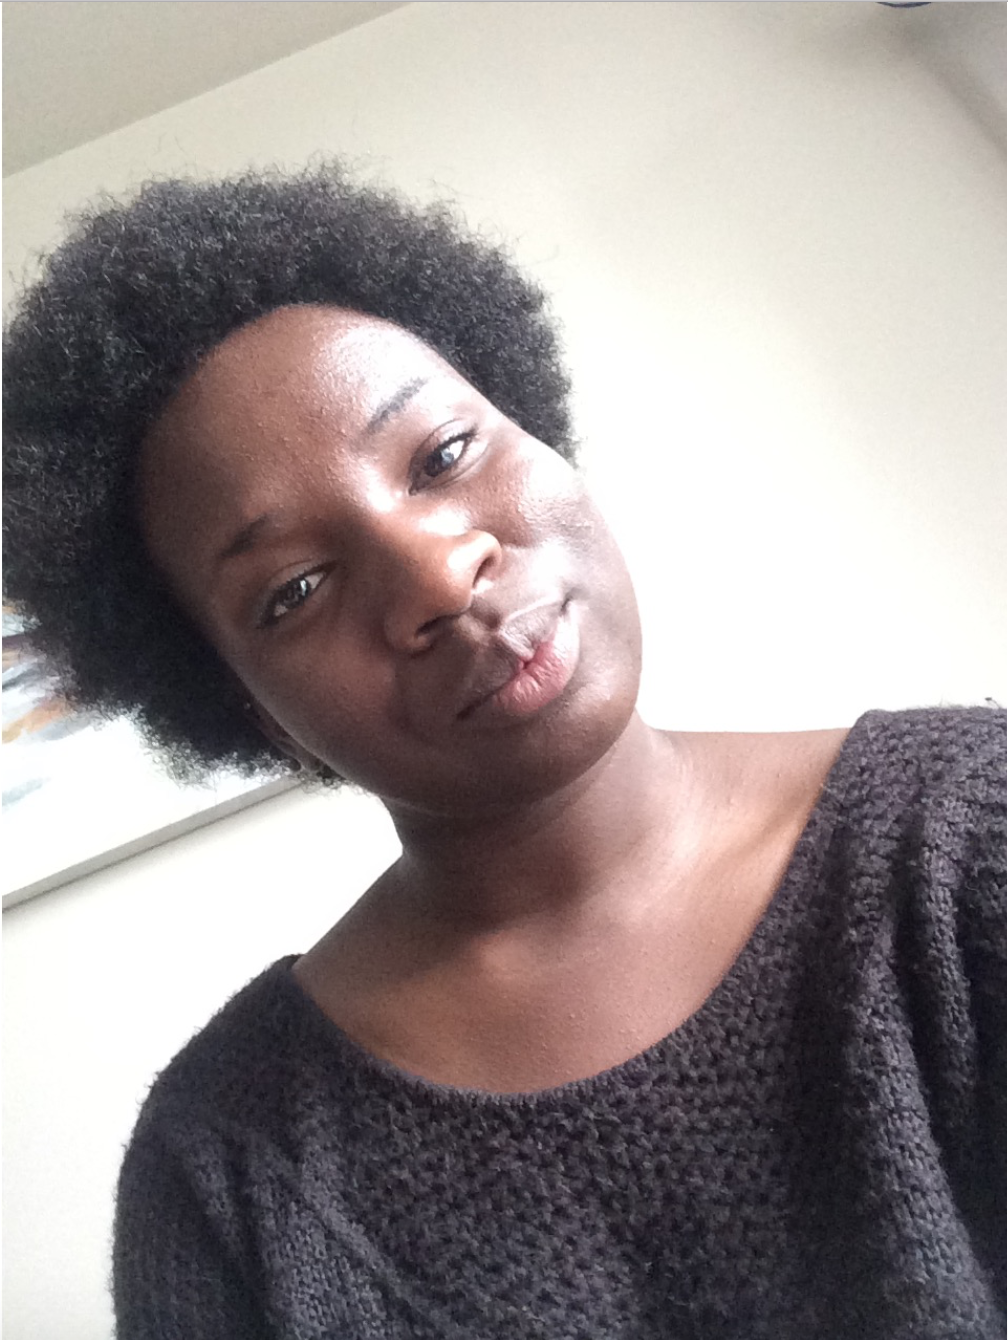 This was the first time I fully saw my natural hair in it's full form. This summer was also the first time I wore it out longer than a few days. ~ July 2017